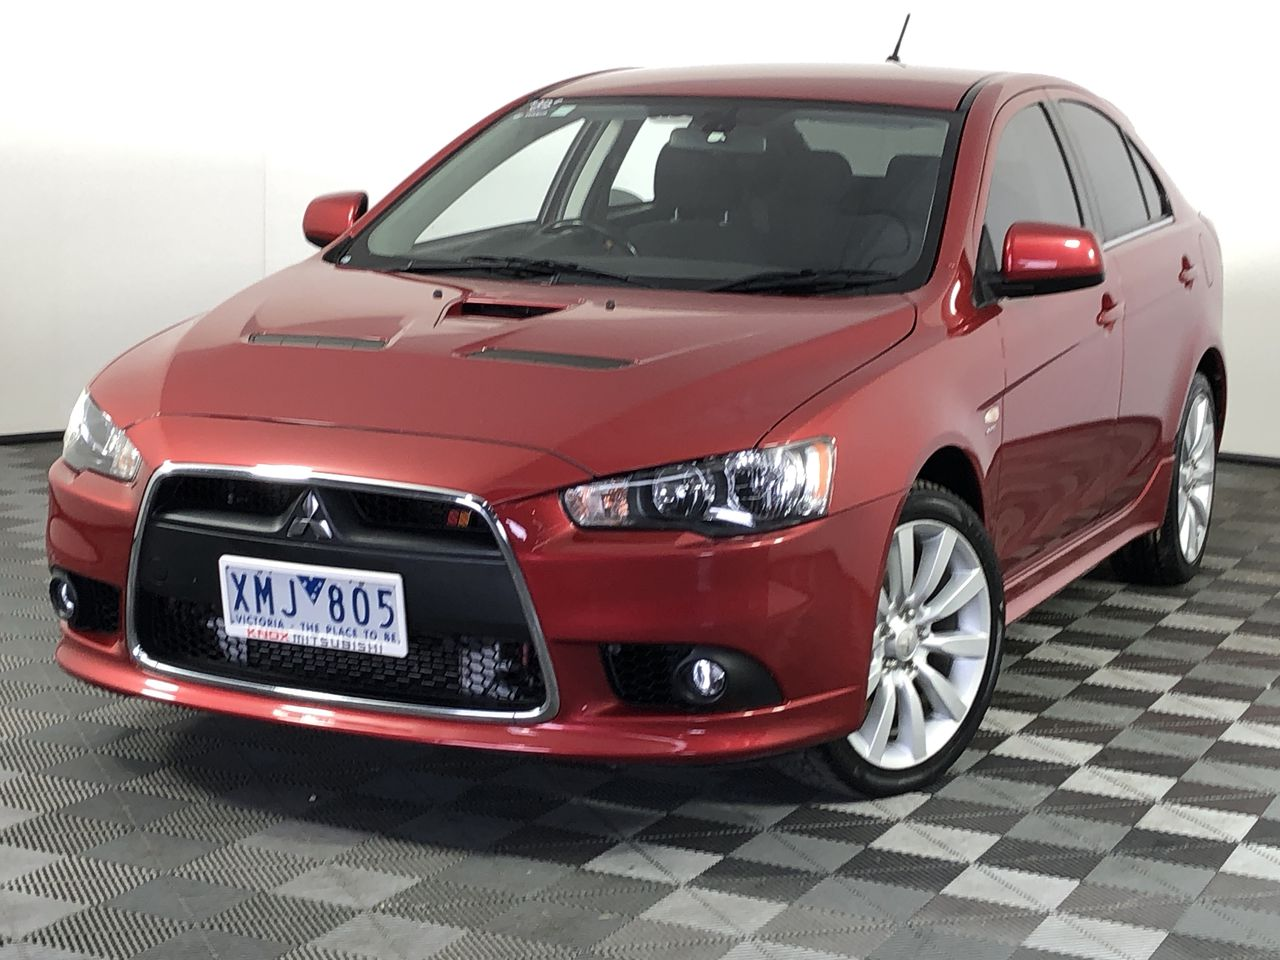 2009 Mitsubishi Lancer RALLIART SPORTBACK CJ Manual Hatchback